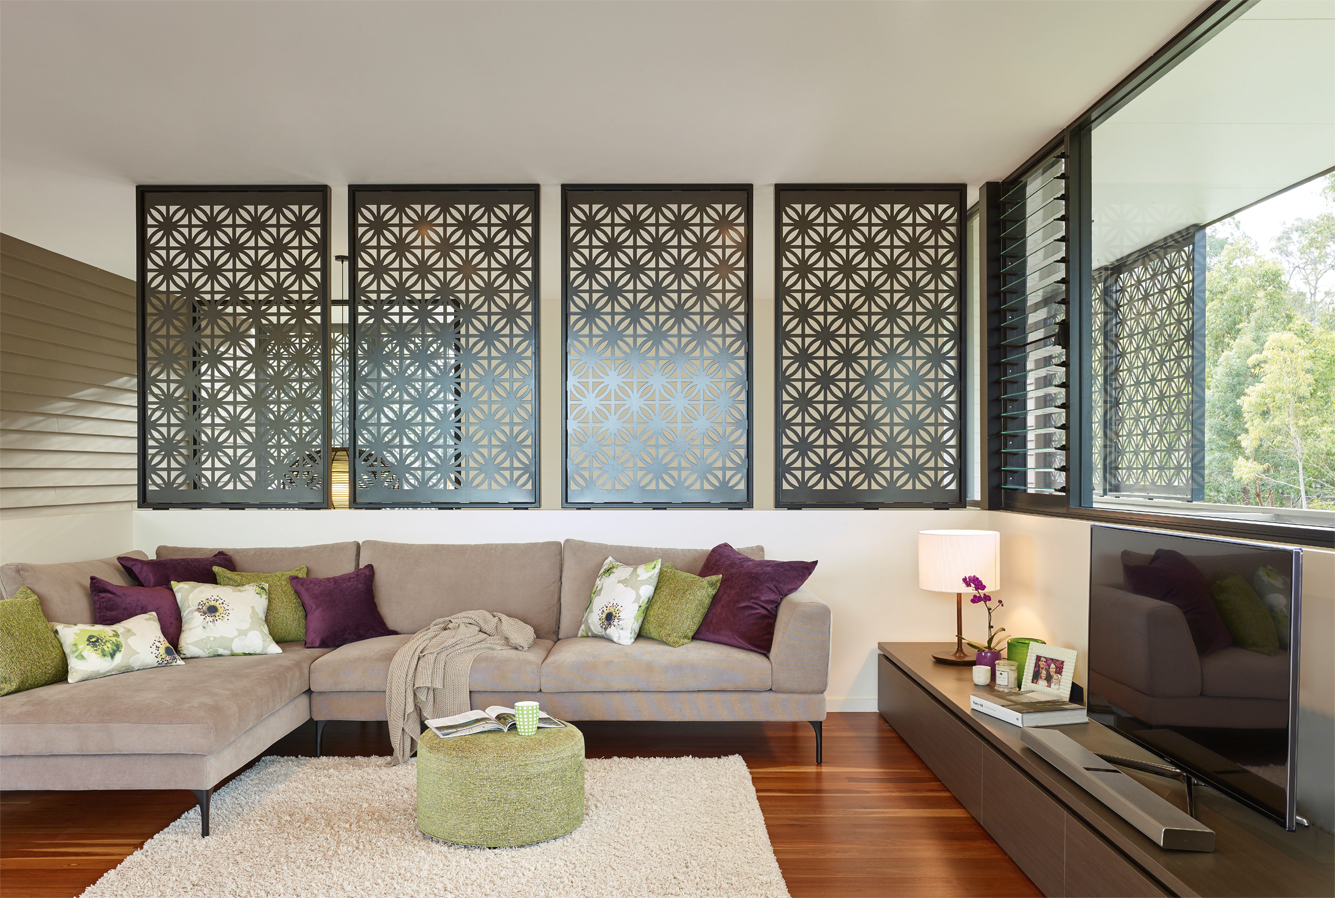 Grand Designs Australia: High Flyer - Architects' masterpiece - interior: laser cut screens feature inside and out